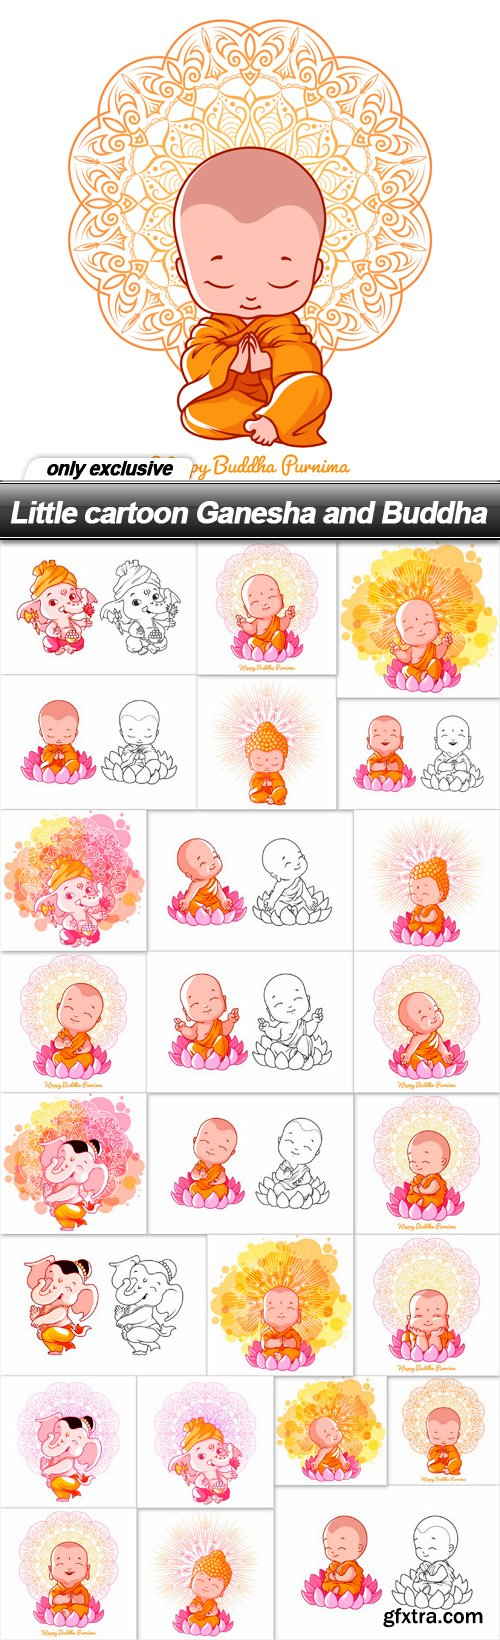 Little cartoon Ganesha and Buddha - 25 EPS